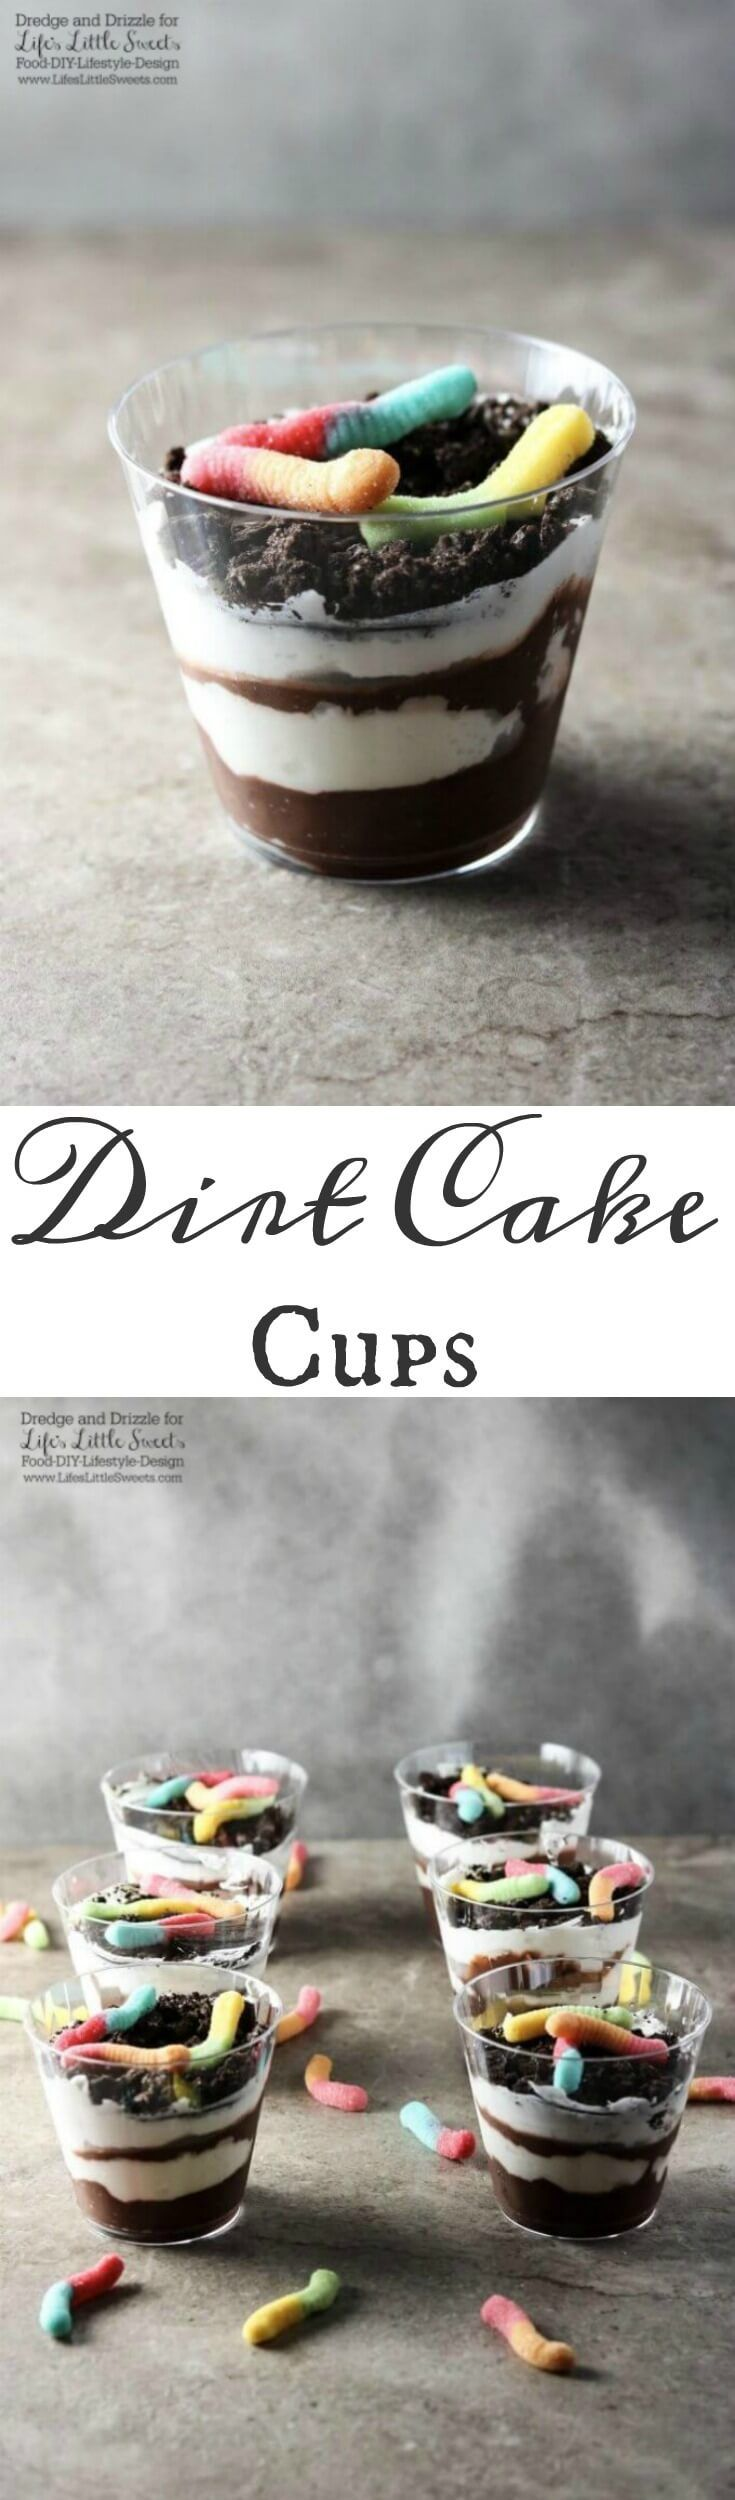 Many of us have been told to not eat dirt. There are always exceptions and these Dirt Cake Cups are a fun way to break the rules. Perfect for a family-friendly get together or child's birthday party!  (Halloween Sweet Recipes)